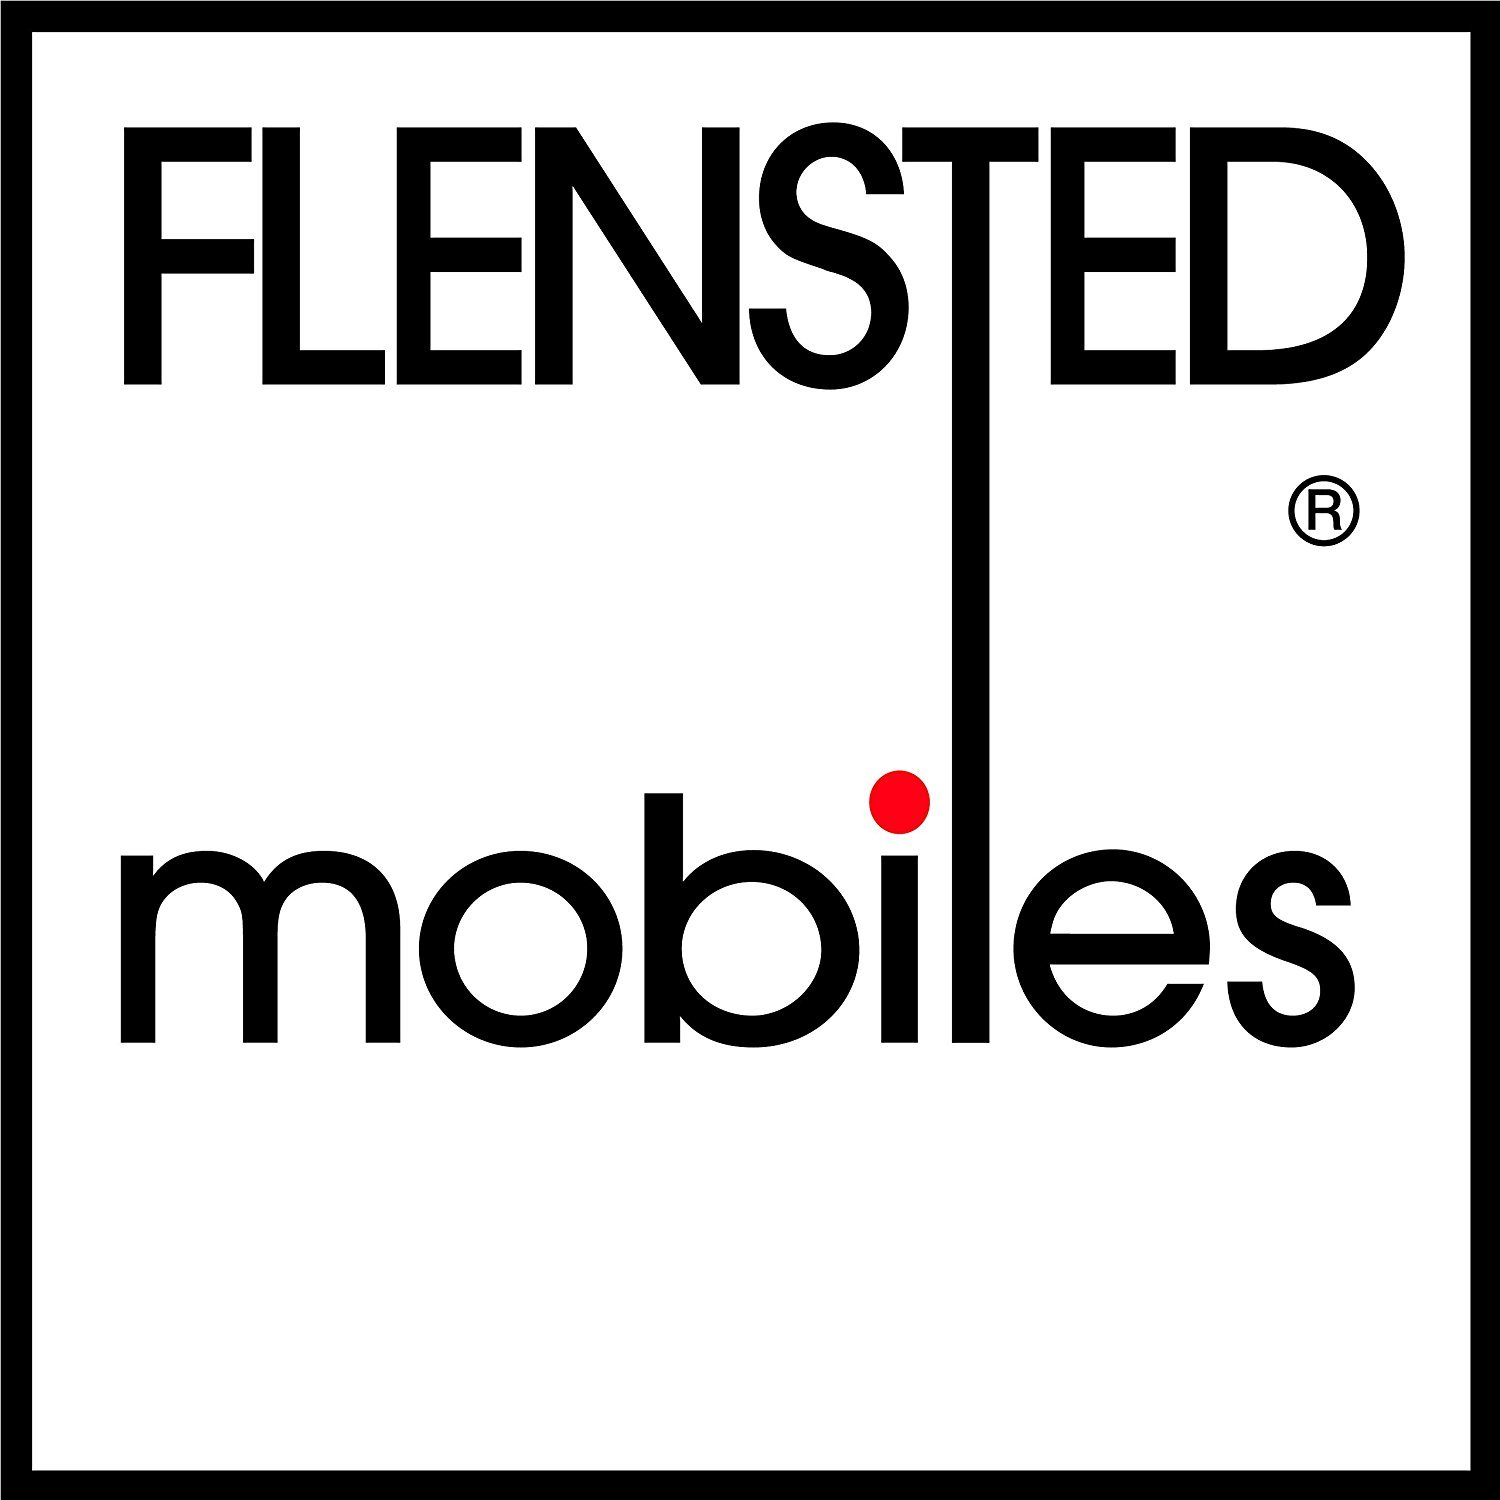 Memorabilia 8 Mobile - F419b - 26 Inches - Handmade in Denmark by Flensted by Flensted Mobiles (Image #3)